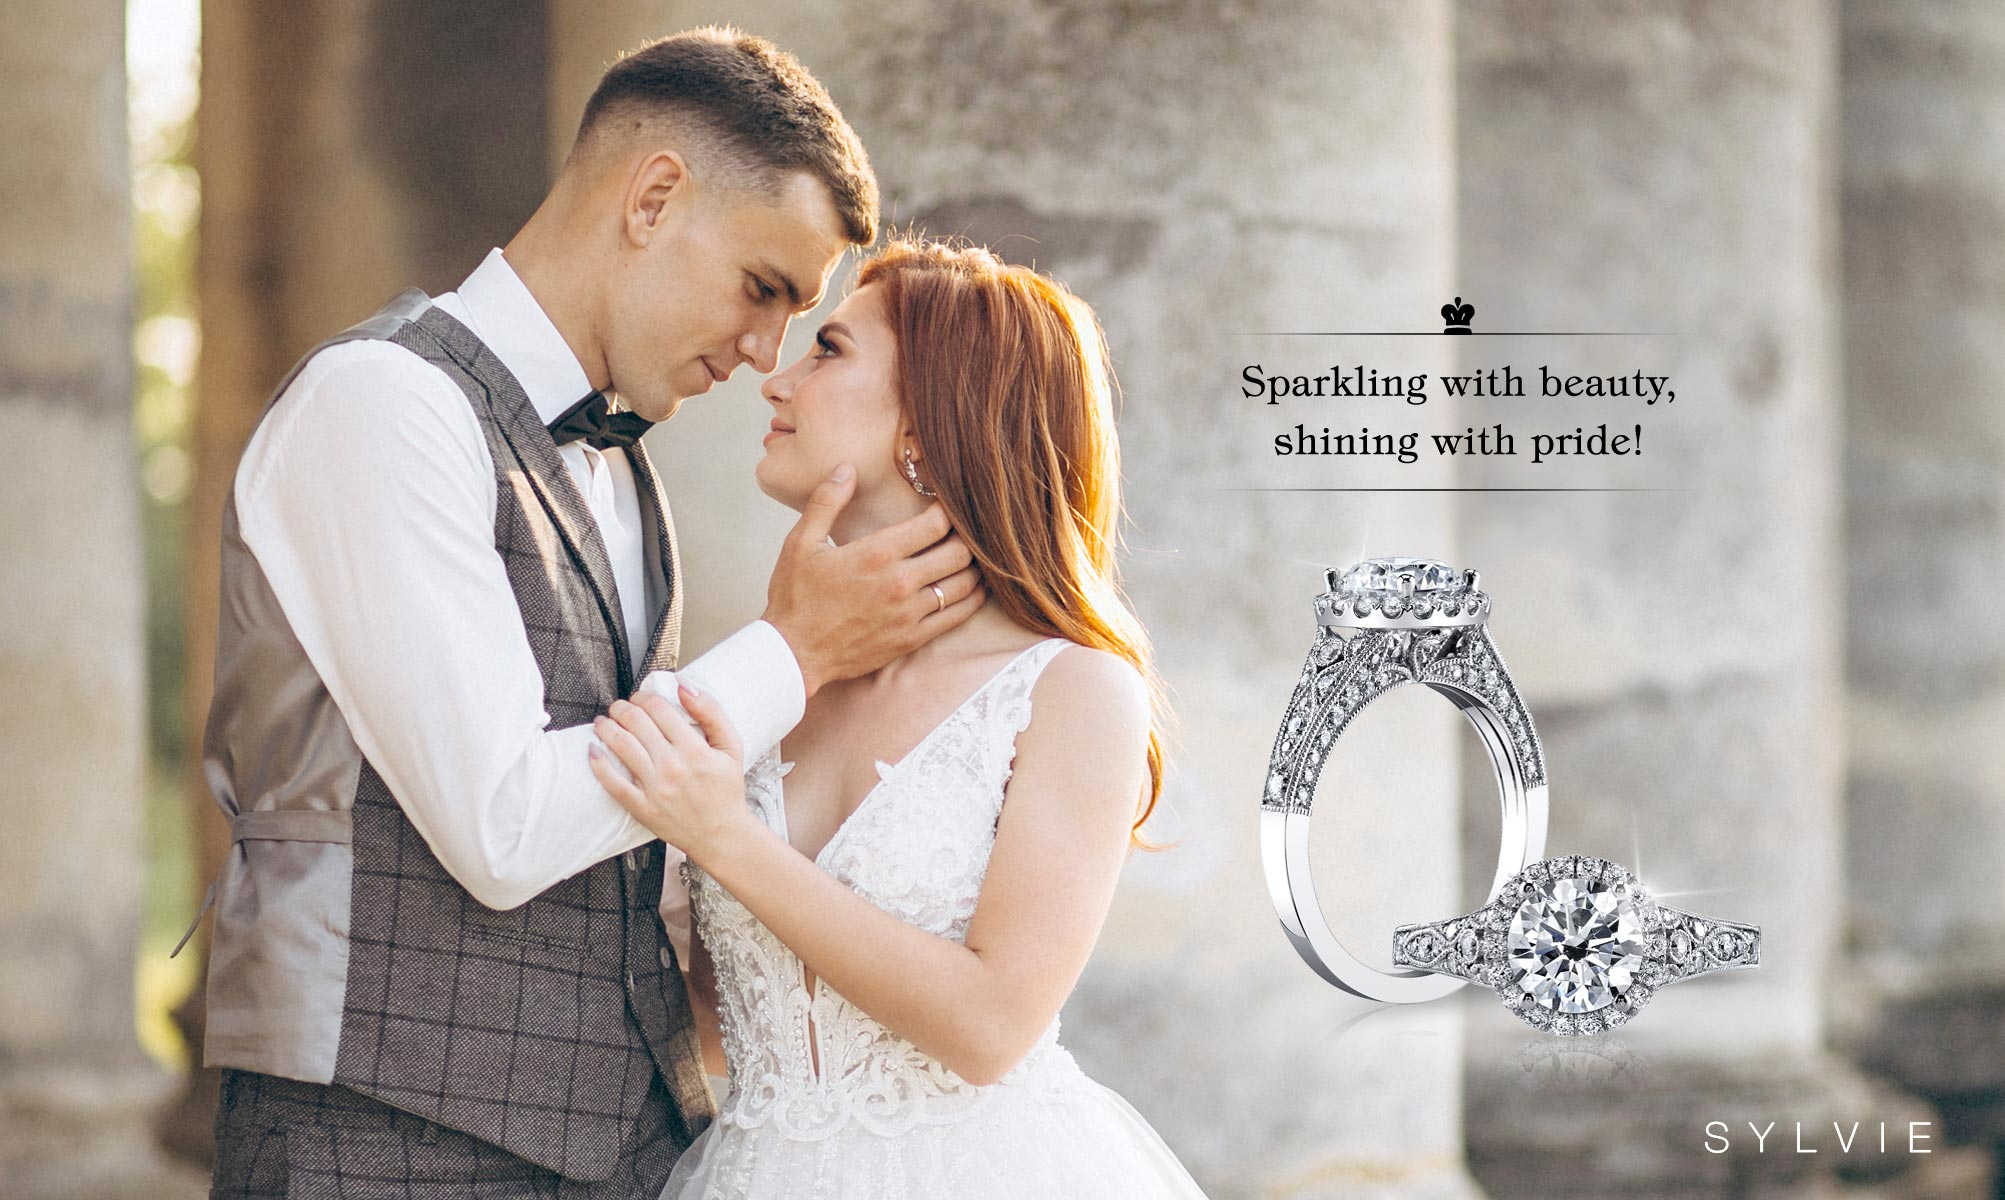 Halo Engagement Rings Available At DeAngelis Jewelers